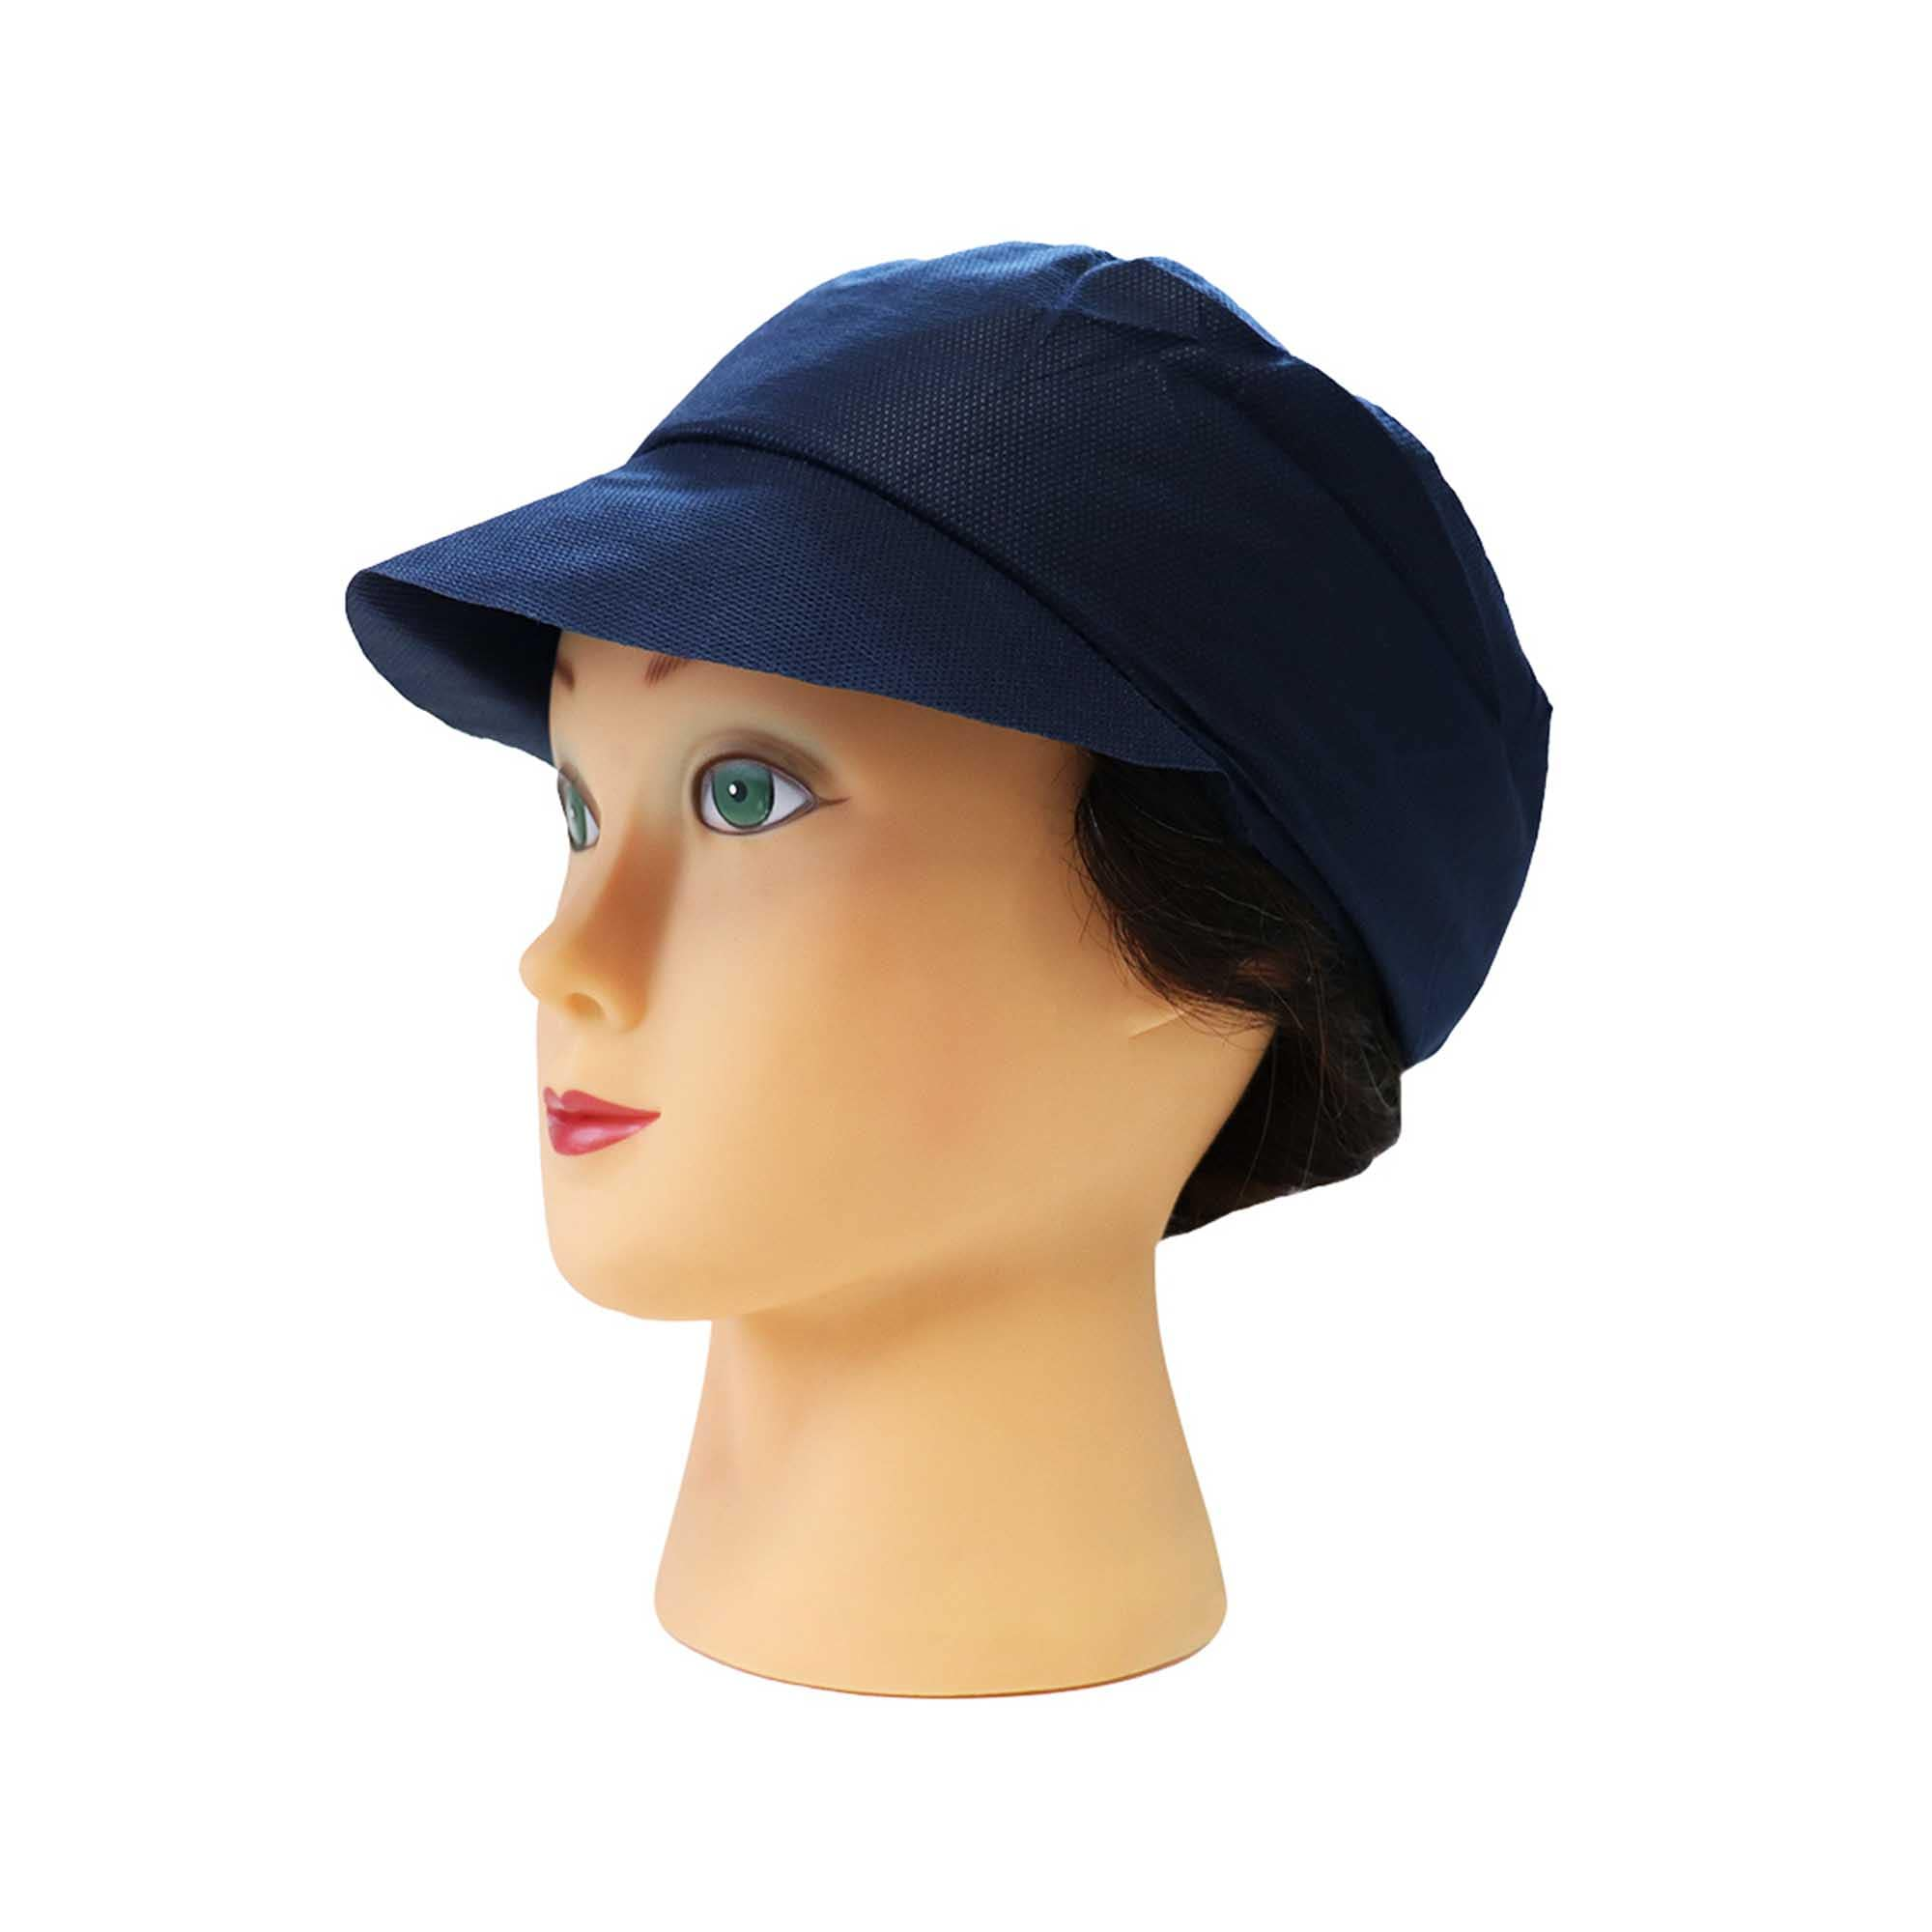 Disposable Mob & Peaked Caps